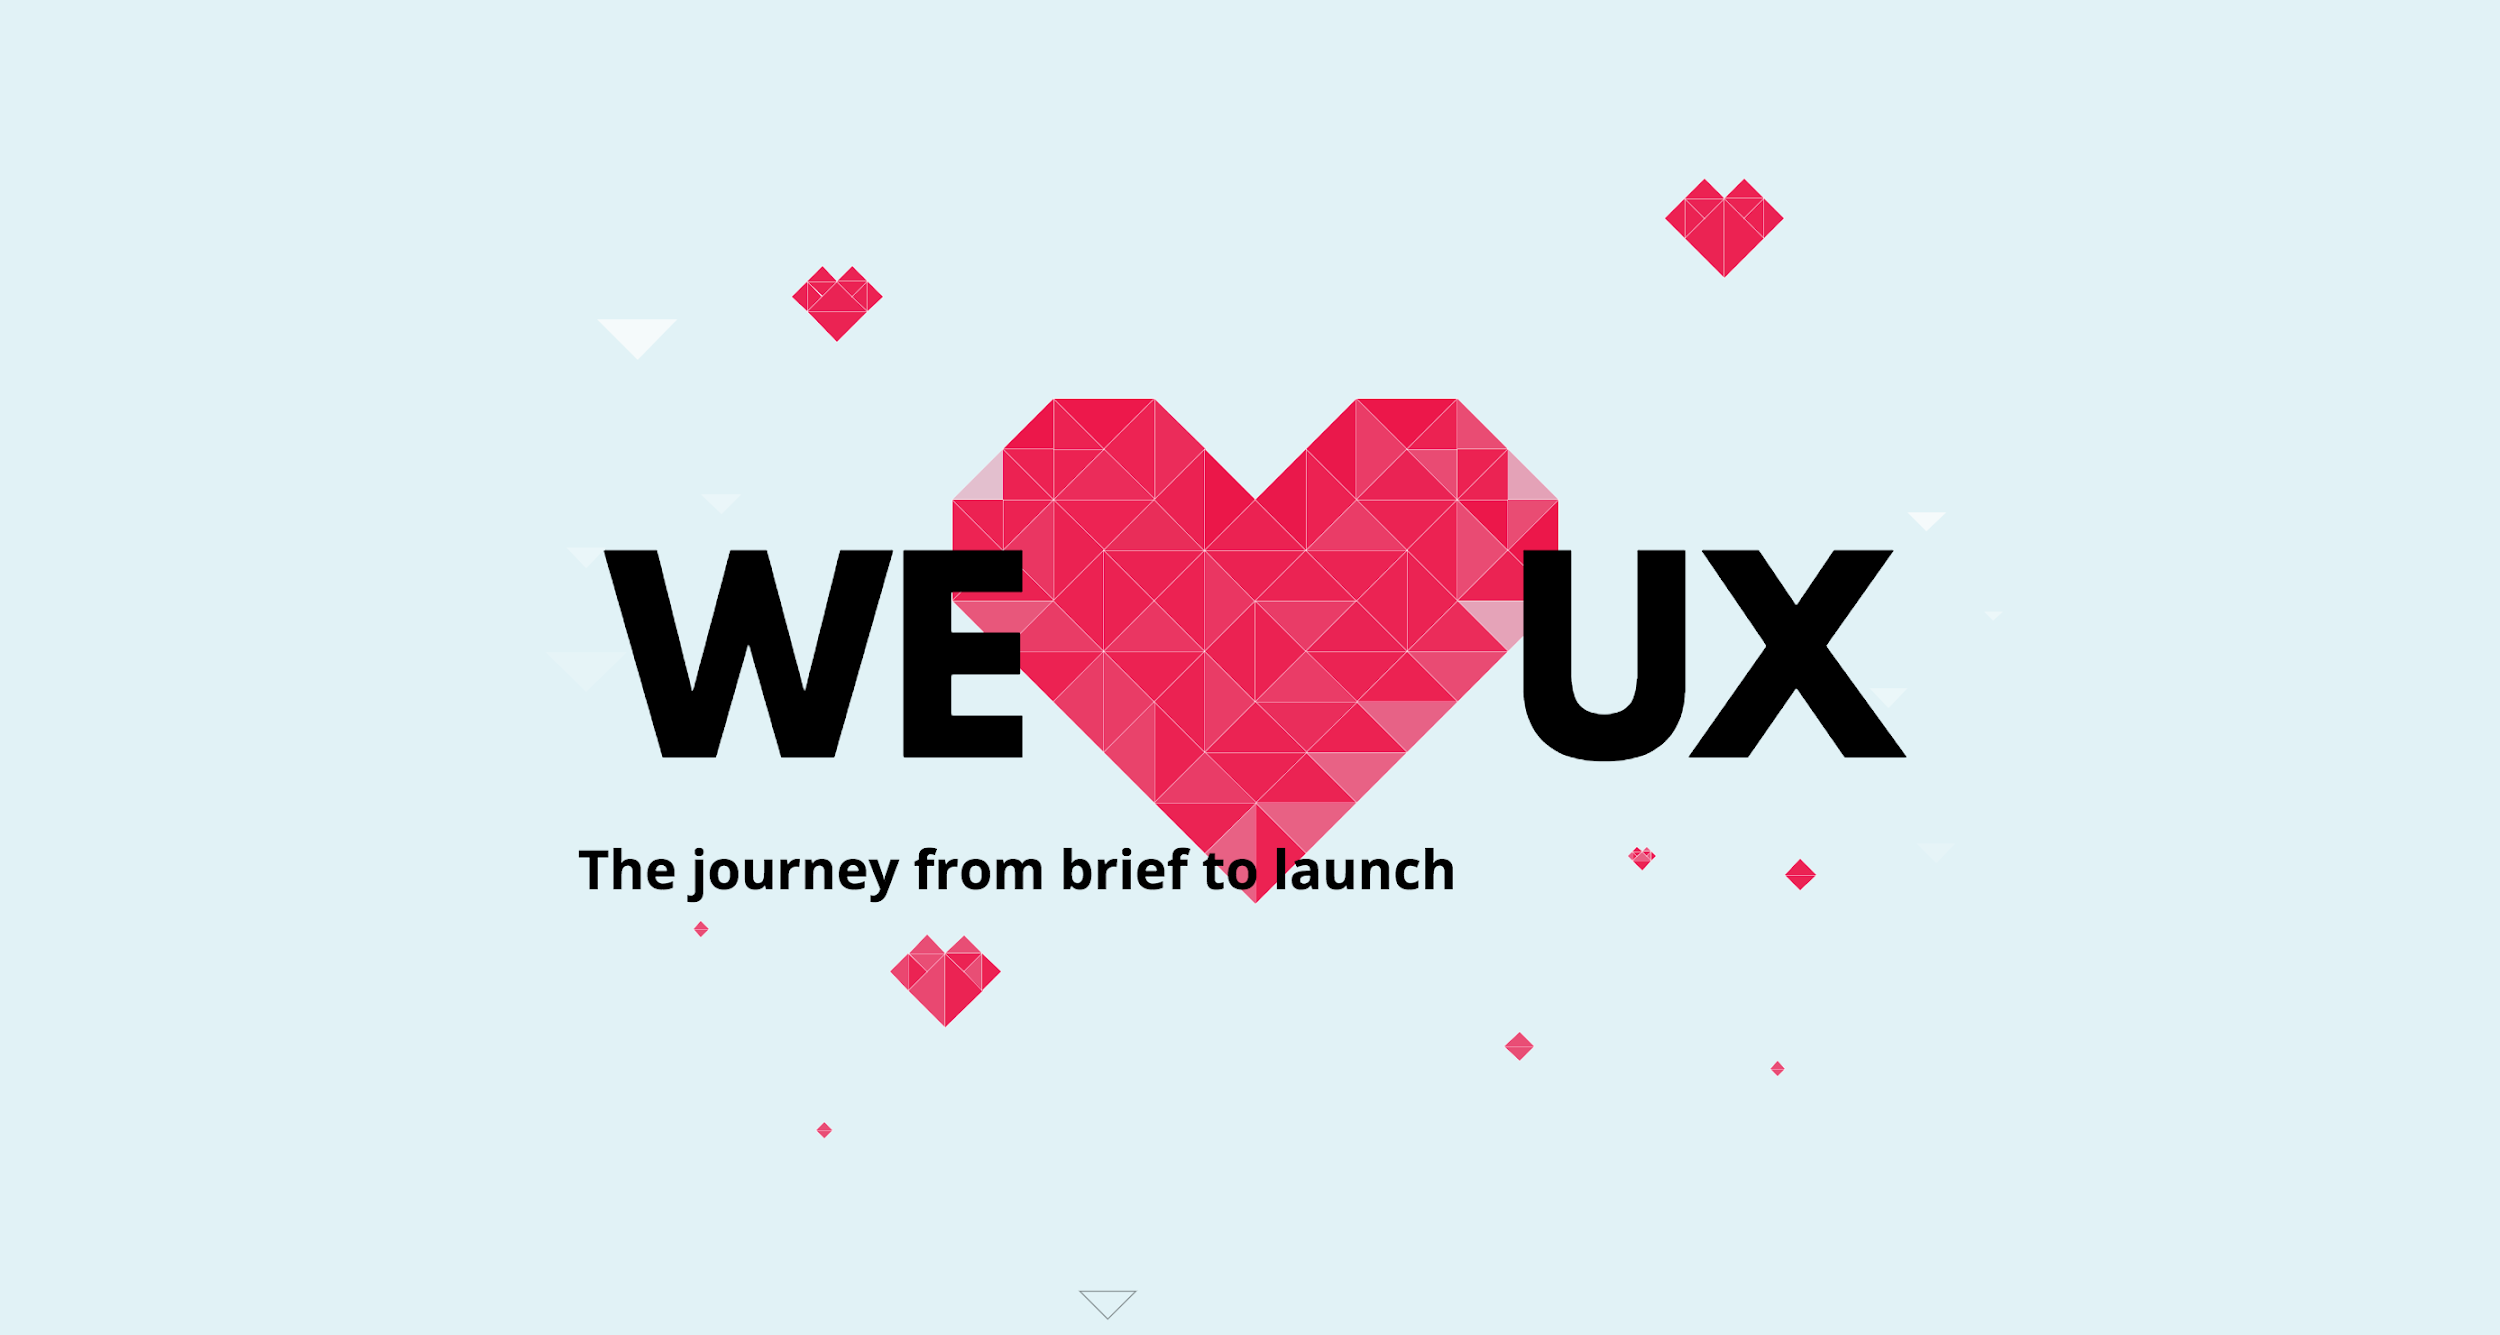 The next big trend in UX design may be more bold typography and animation on the web